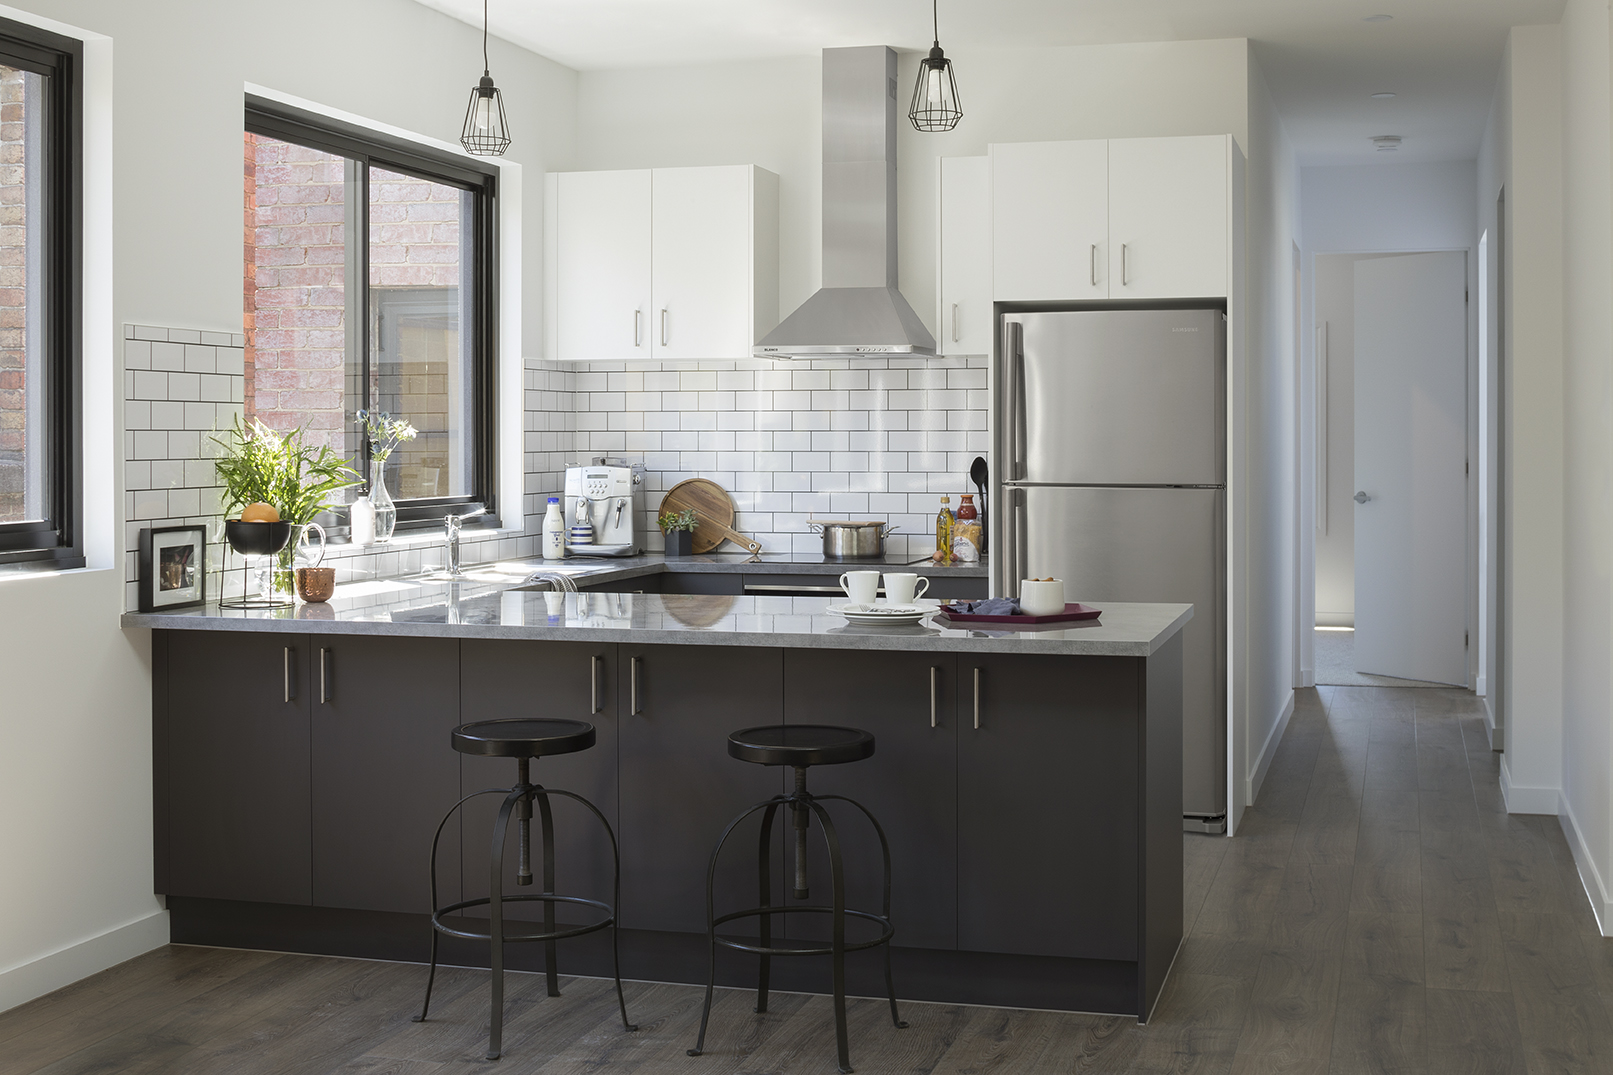 Decor Inspiration A Kitchen To Live In: Kitchen Inspiration And Ideas